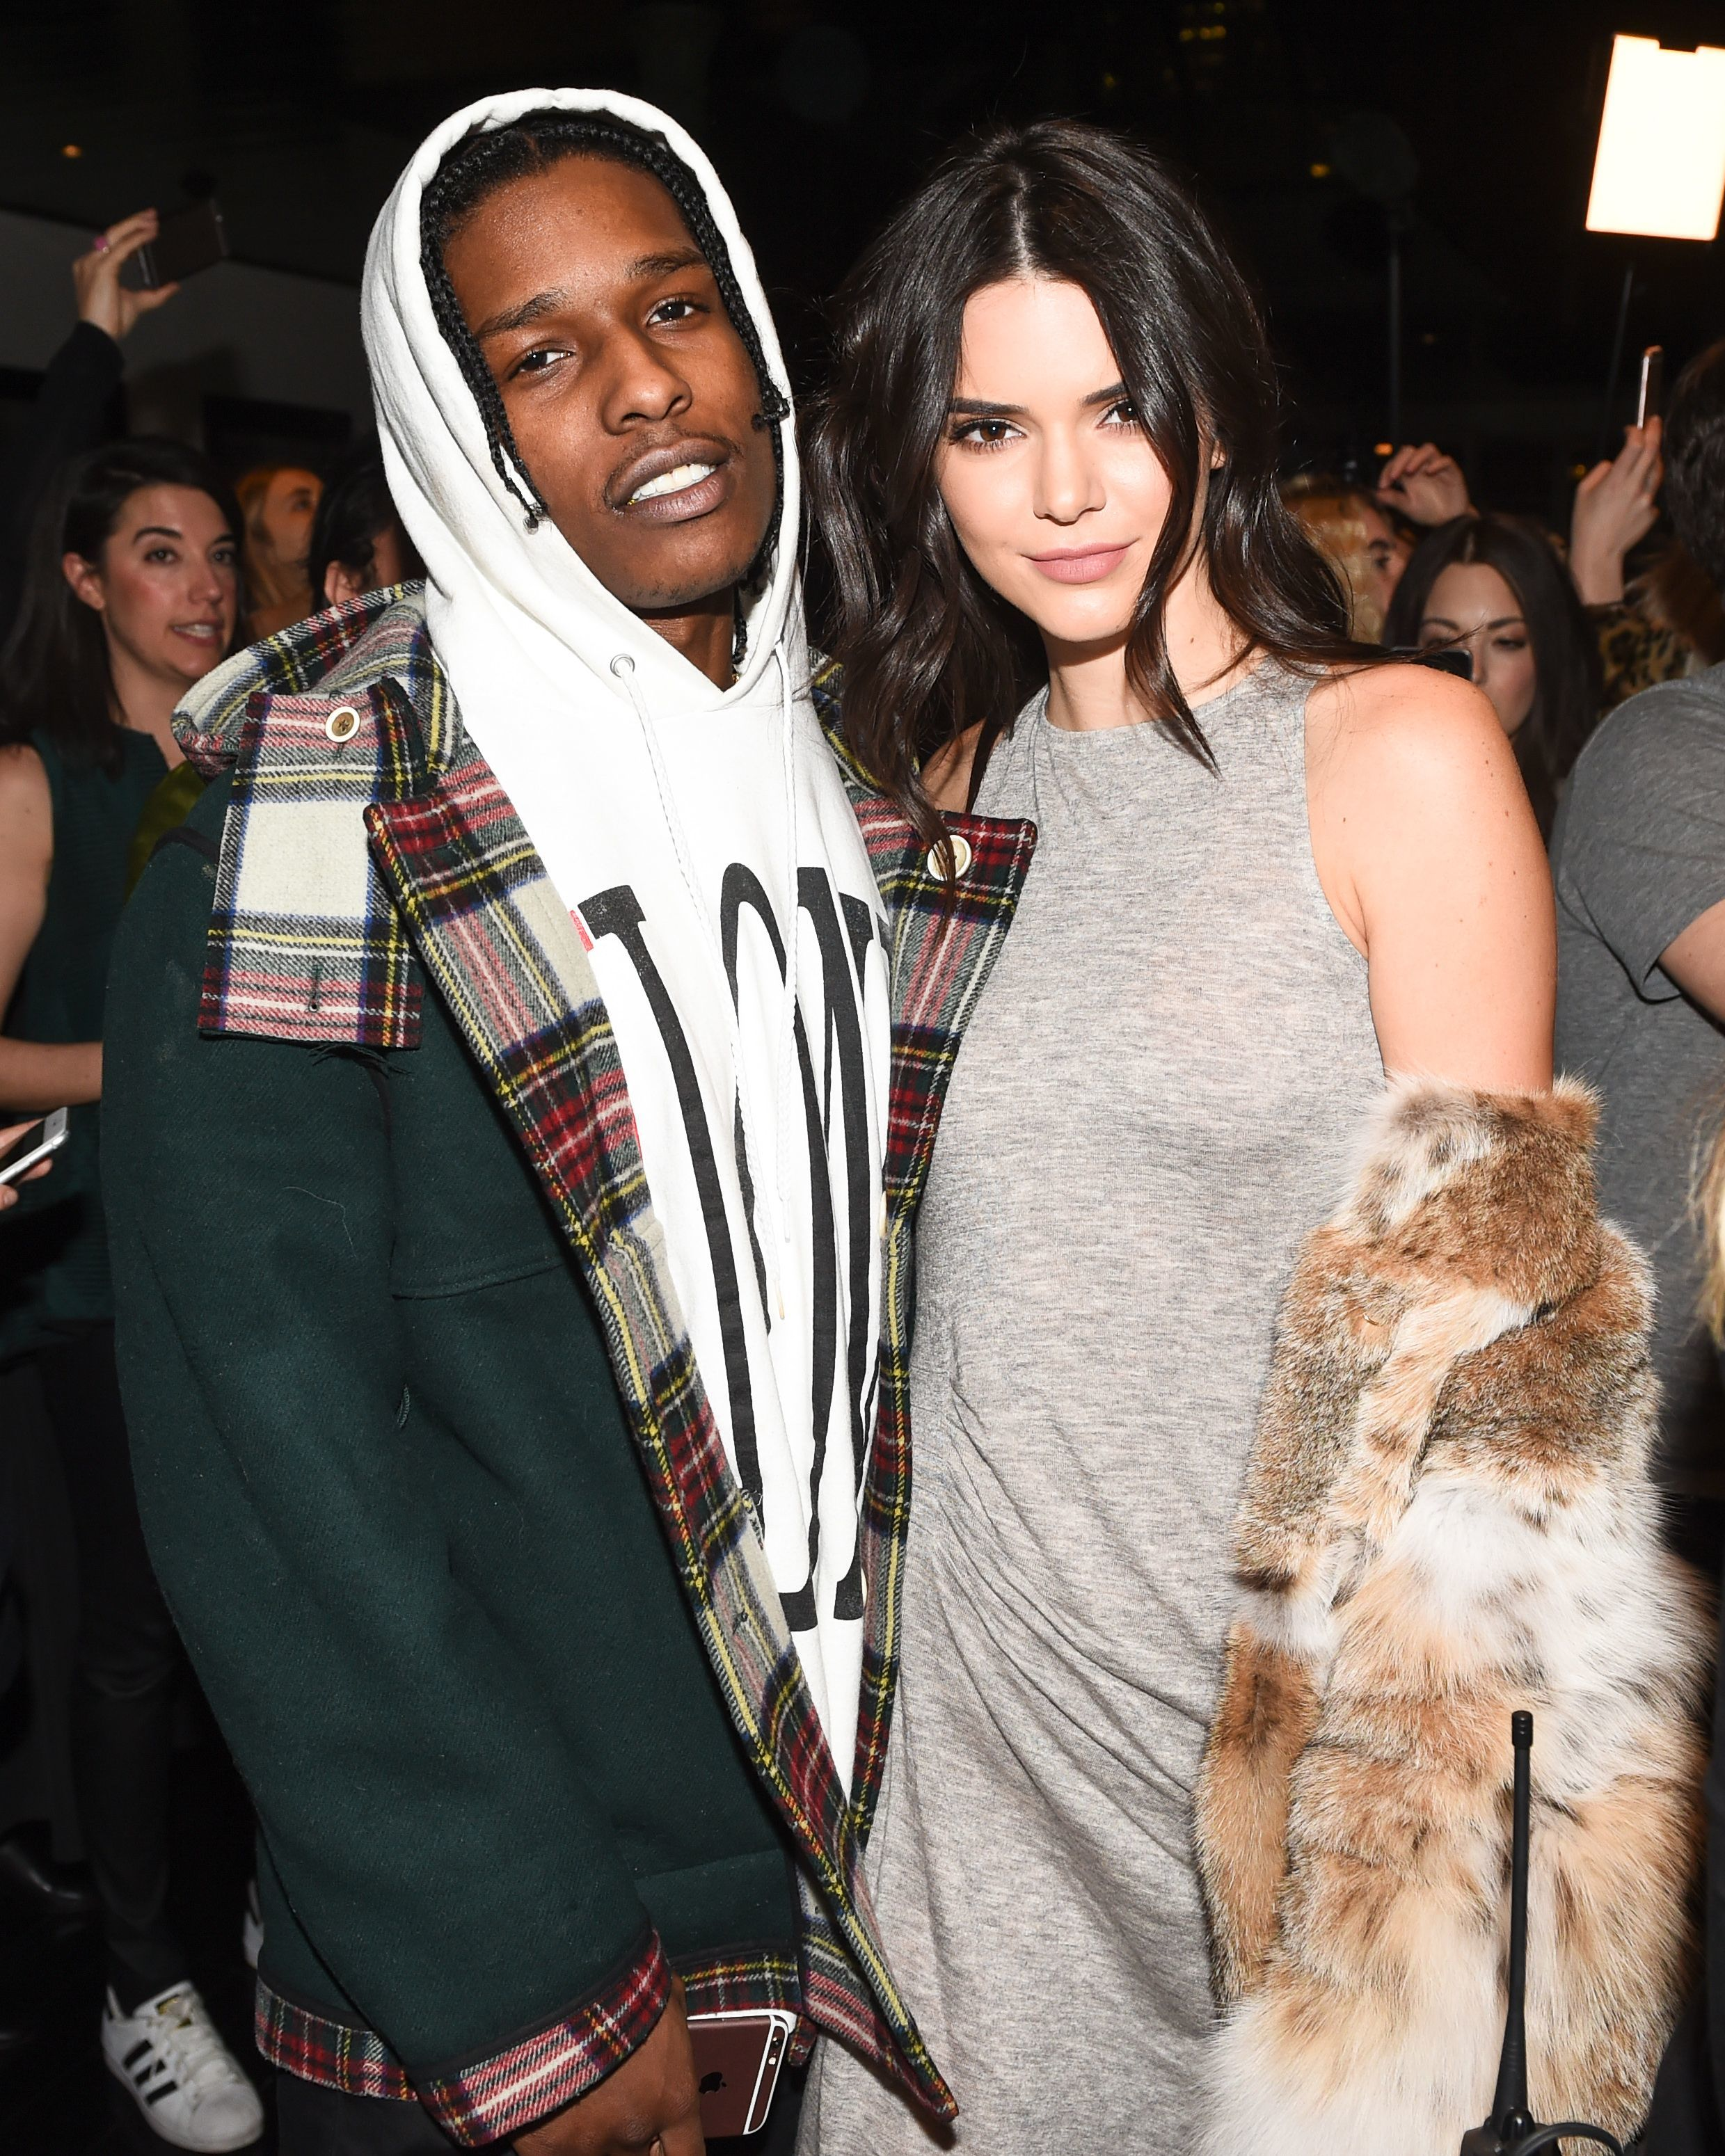 Kendall Jenner, A$AP Rocky's romance is just a fling